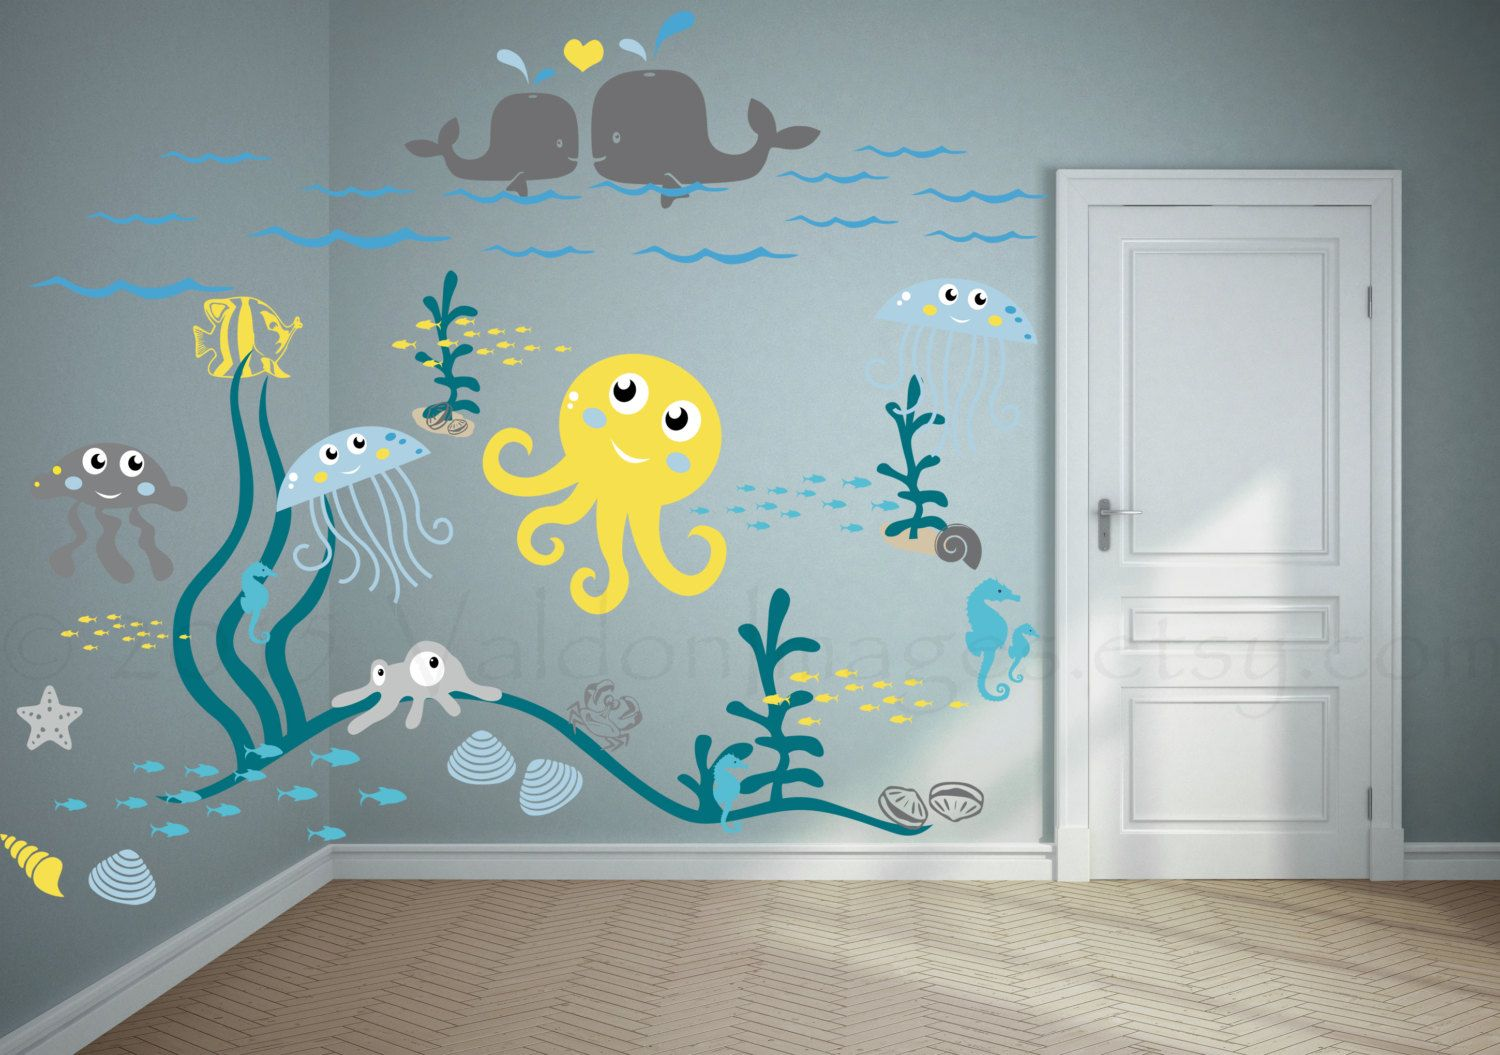 Pin By L Engler On Babies In 2019 Kids Room Wall Decals